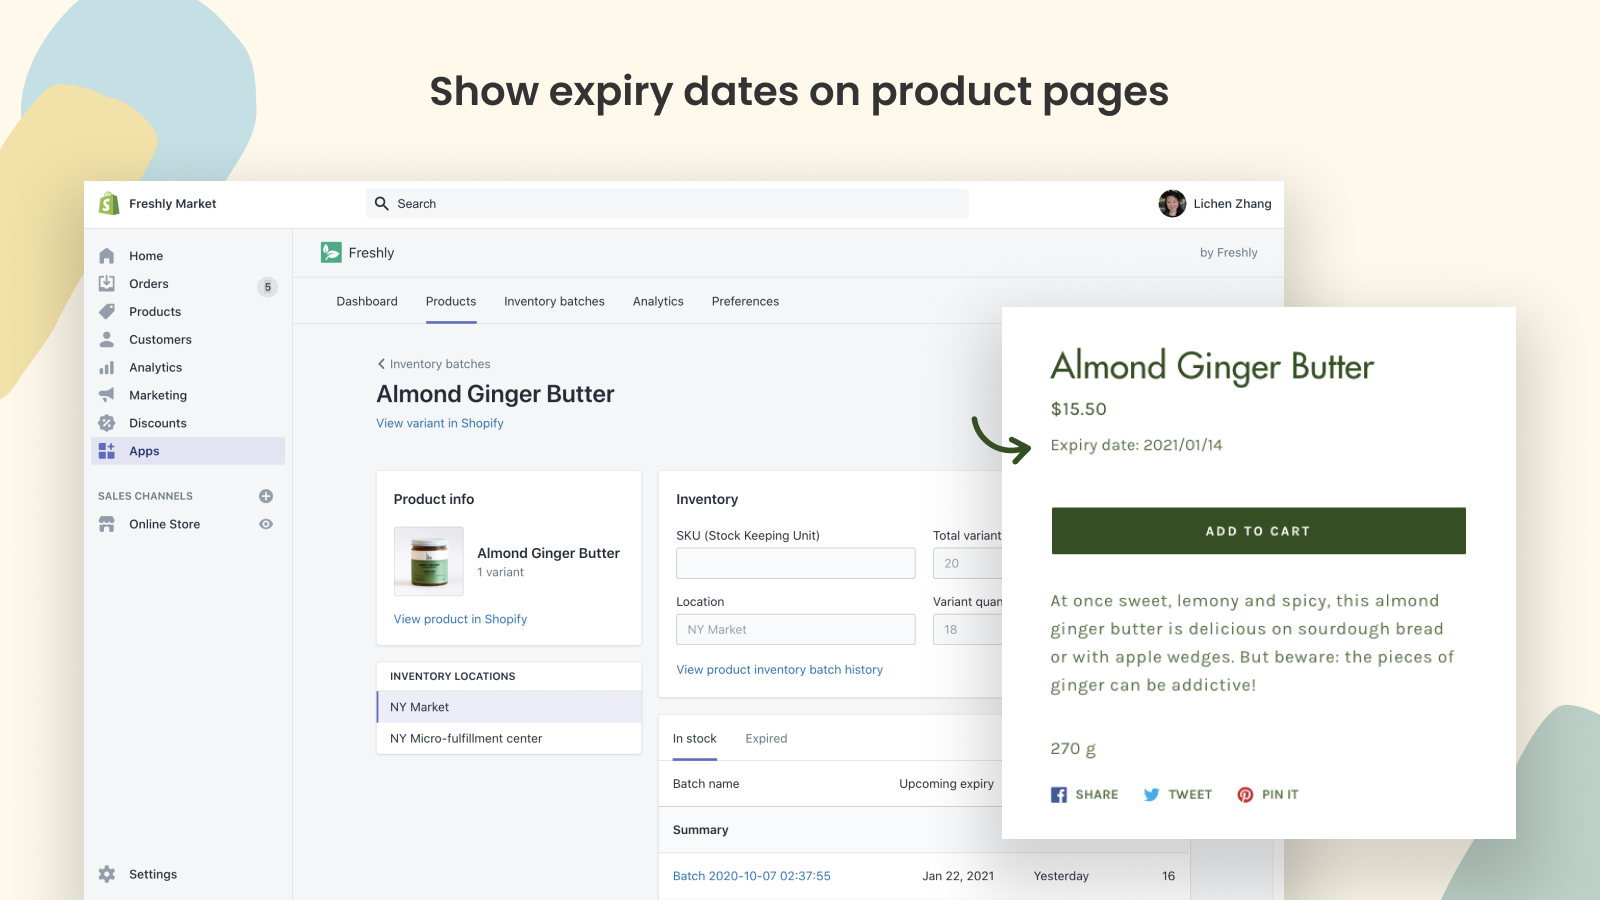 Show expiry dates on product pages